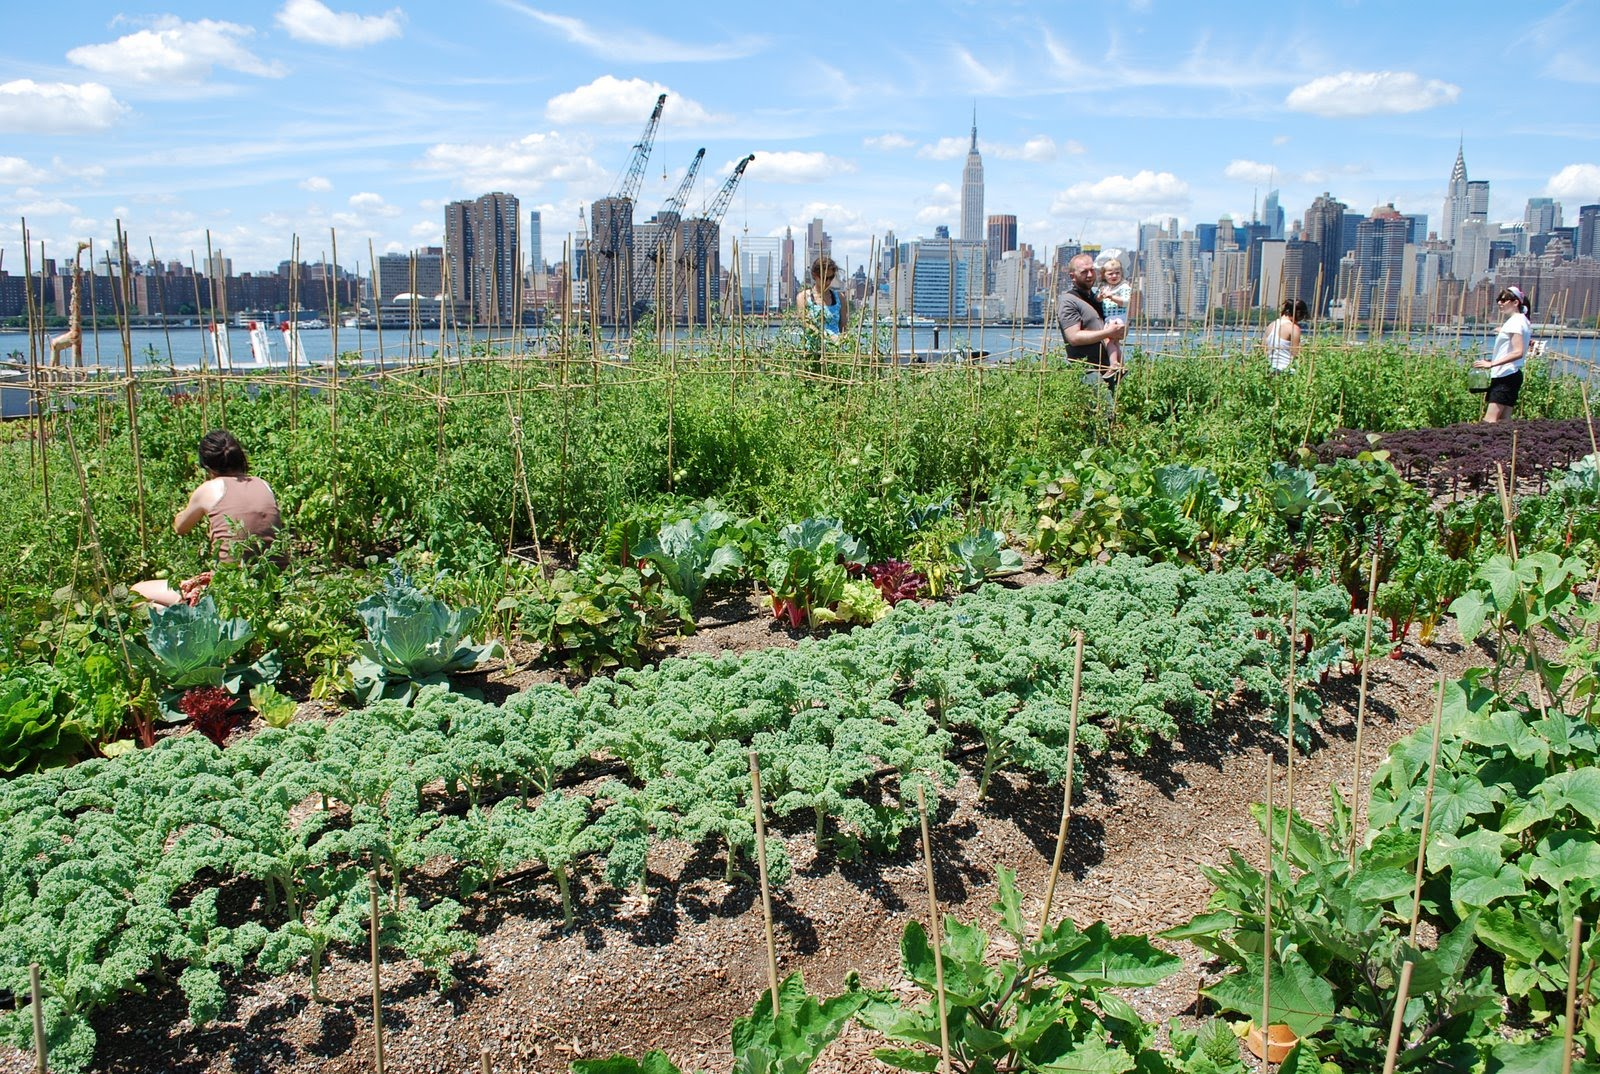 The importance of the practice of urban farming in todays world